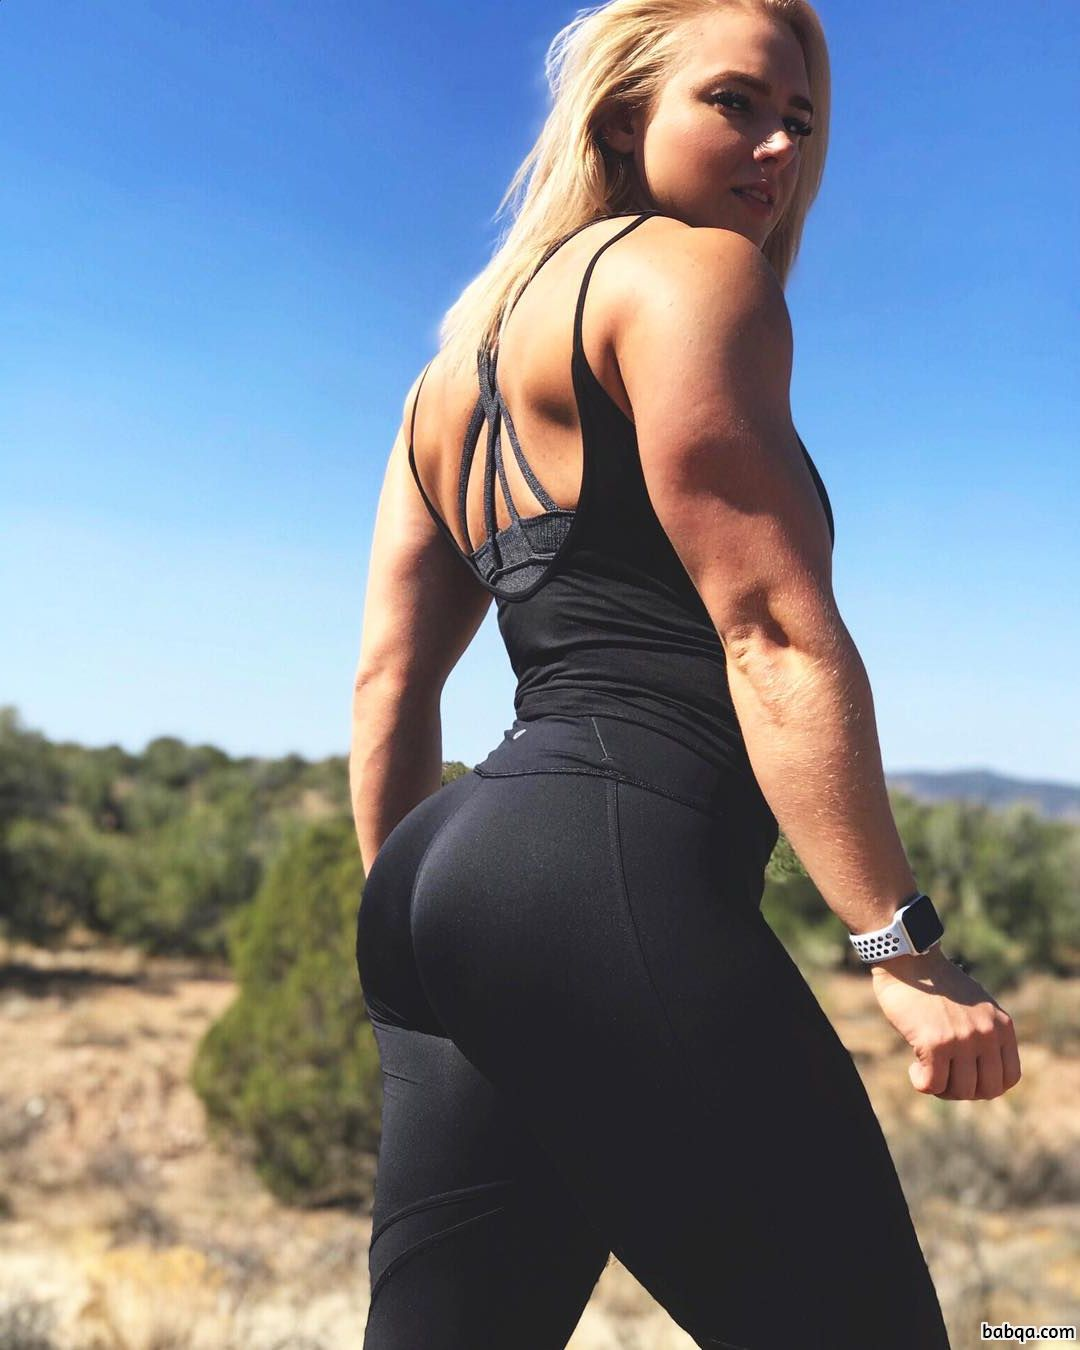 beautiful woman with strong body and toned biceps repost from instagram